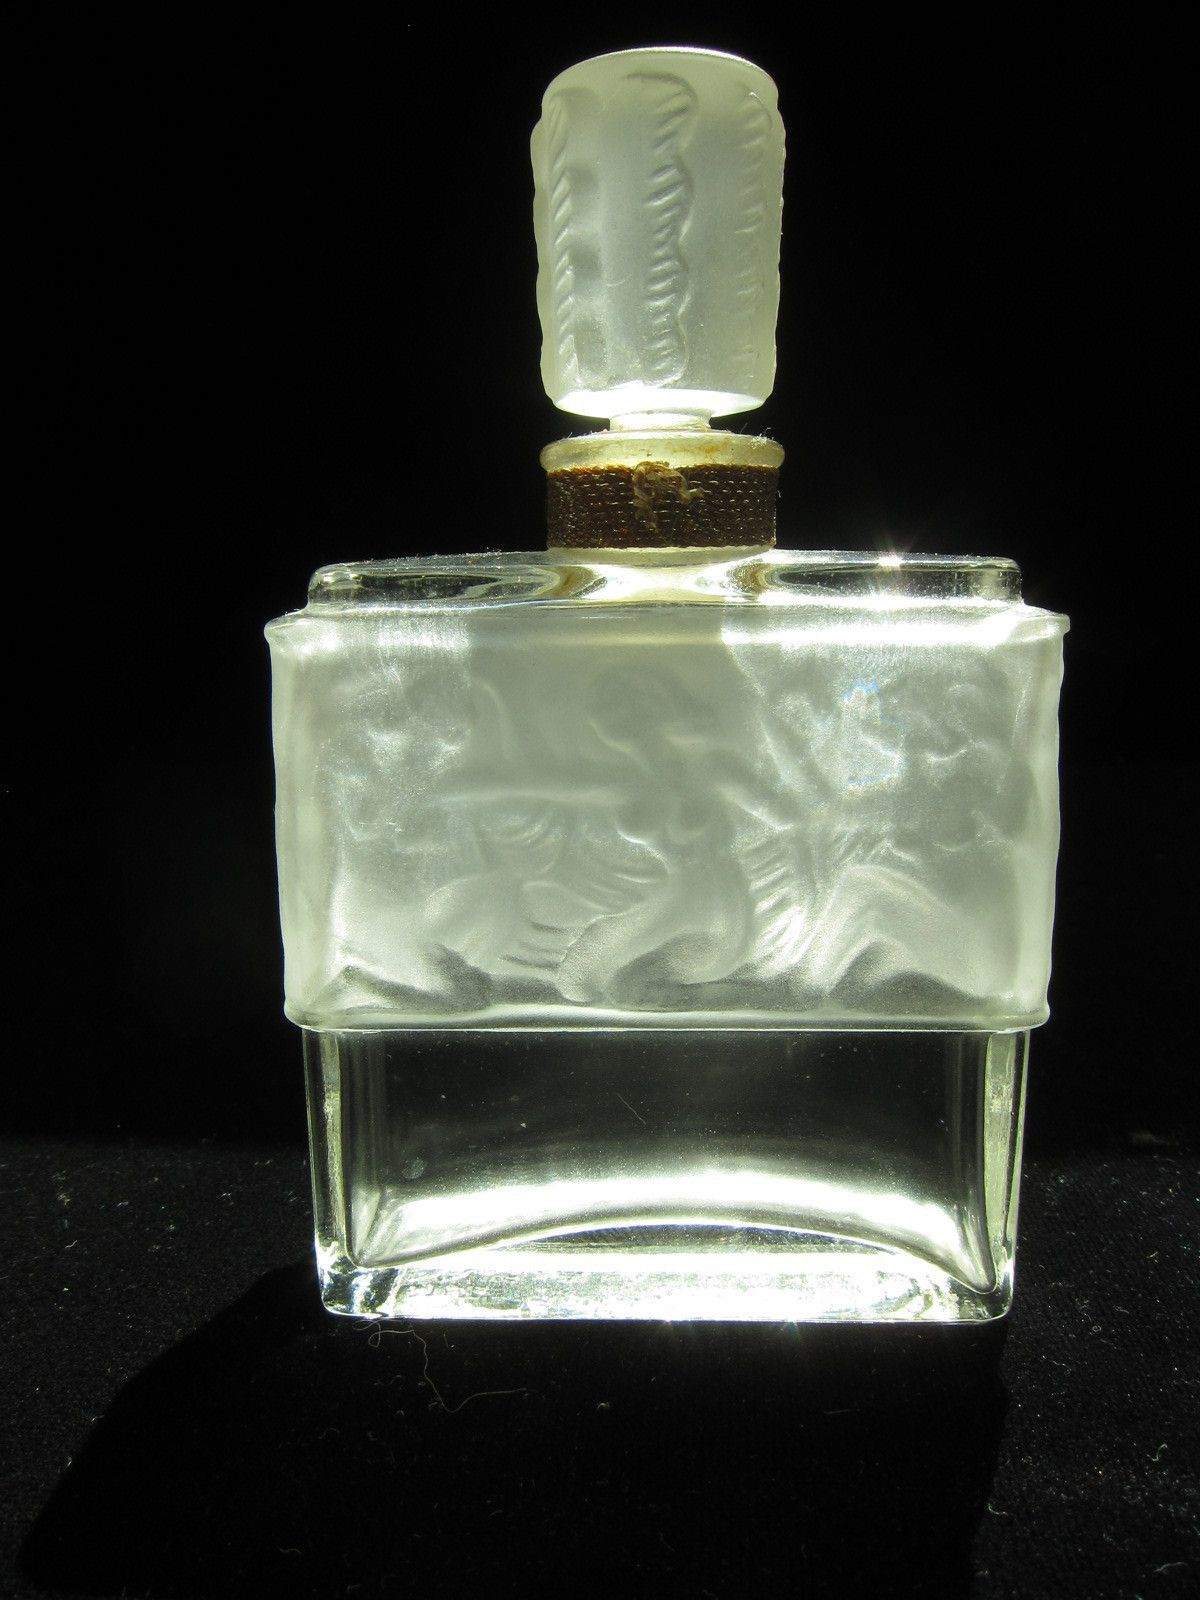 Vintage Molinard de Molinard Lalique Perfume Bottle with Crystal Stopper | eBay